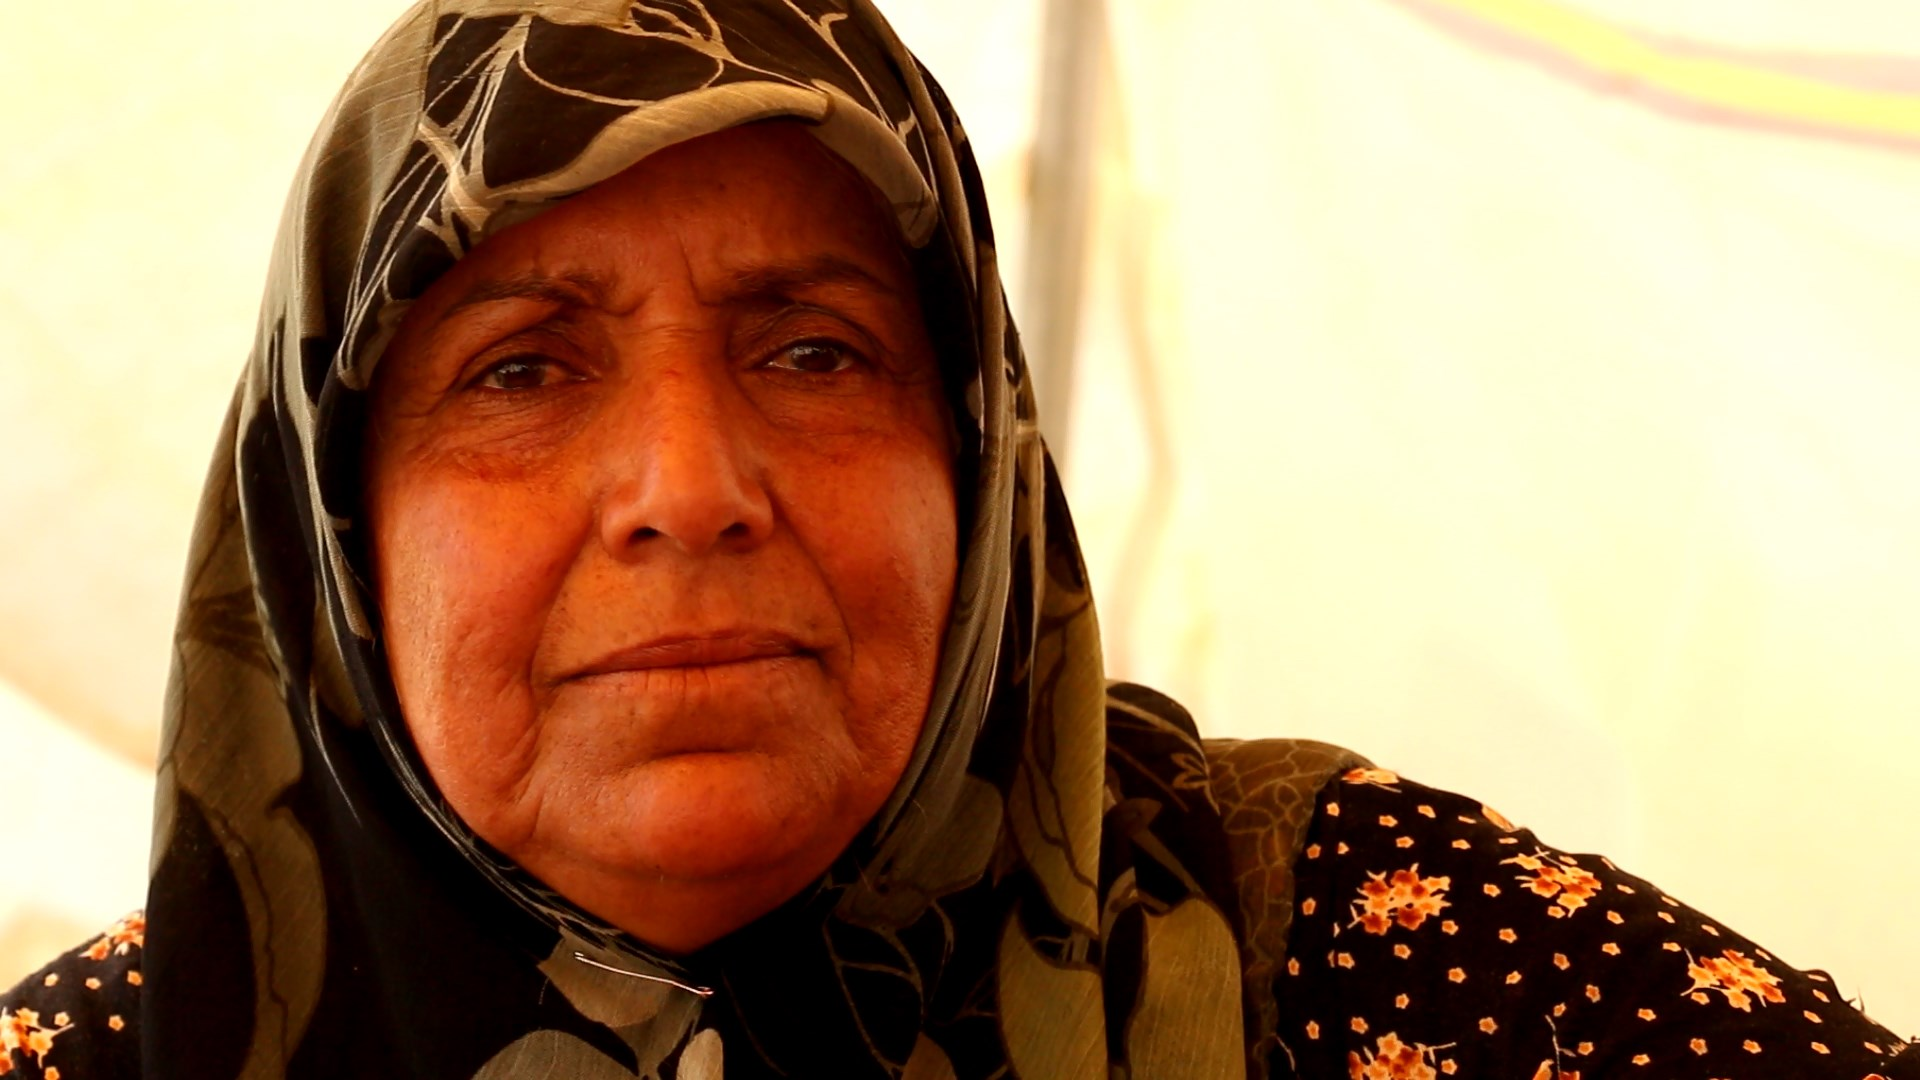 Fatima a grandmother in syria needs your help to get medicines for her family